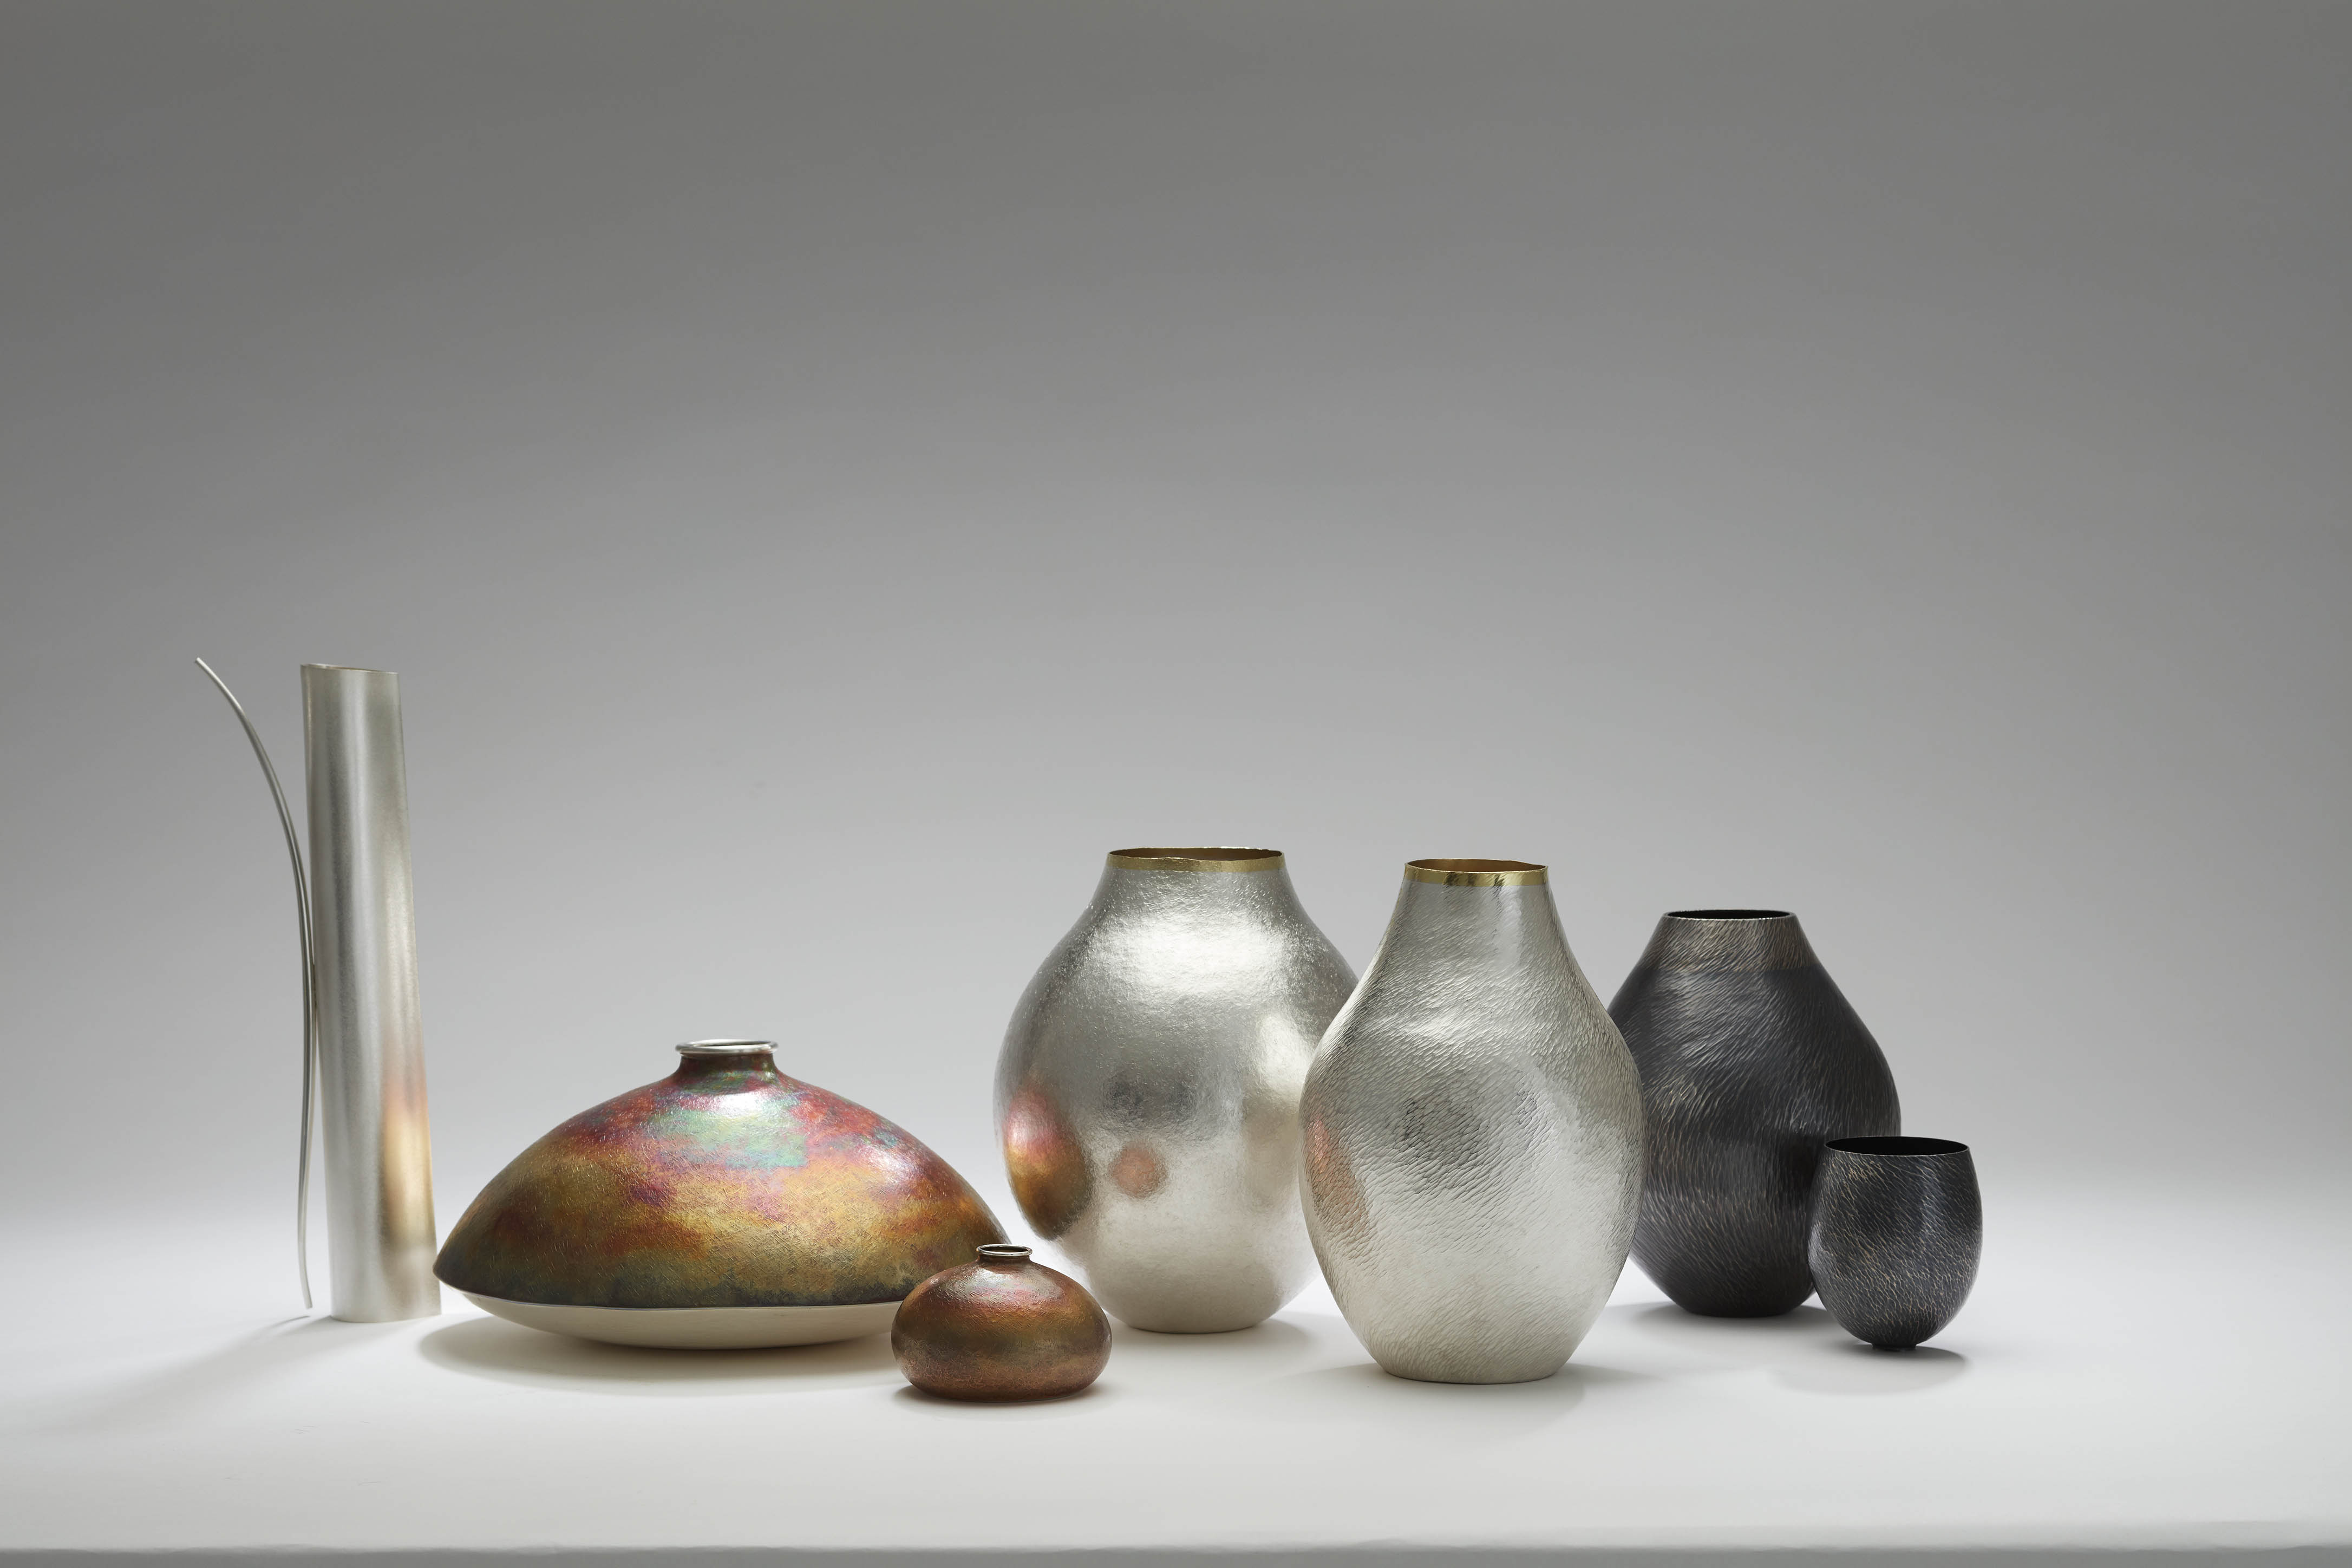 Philip Noakes, Group image of vessels completed in 2018 featuring Satin, Crystal and Ocean Currents Series. Courtesy of the artist. Photographed by Robert Frith